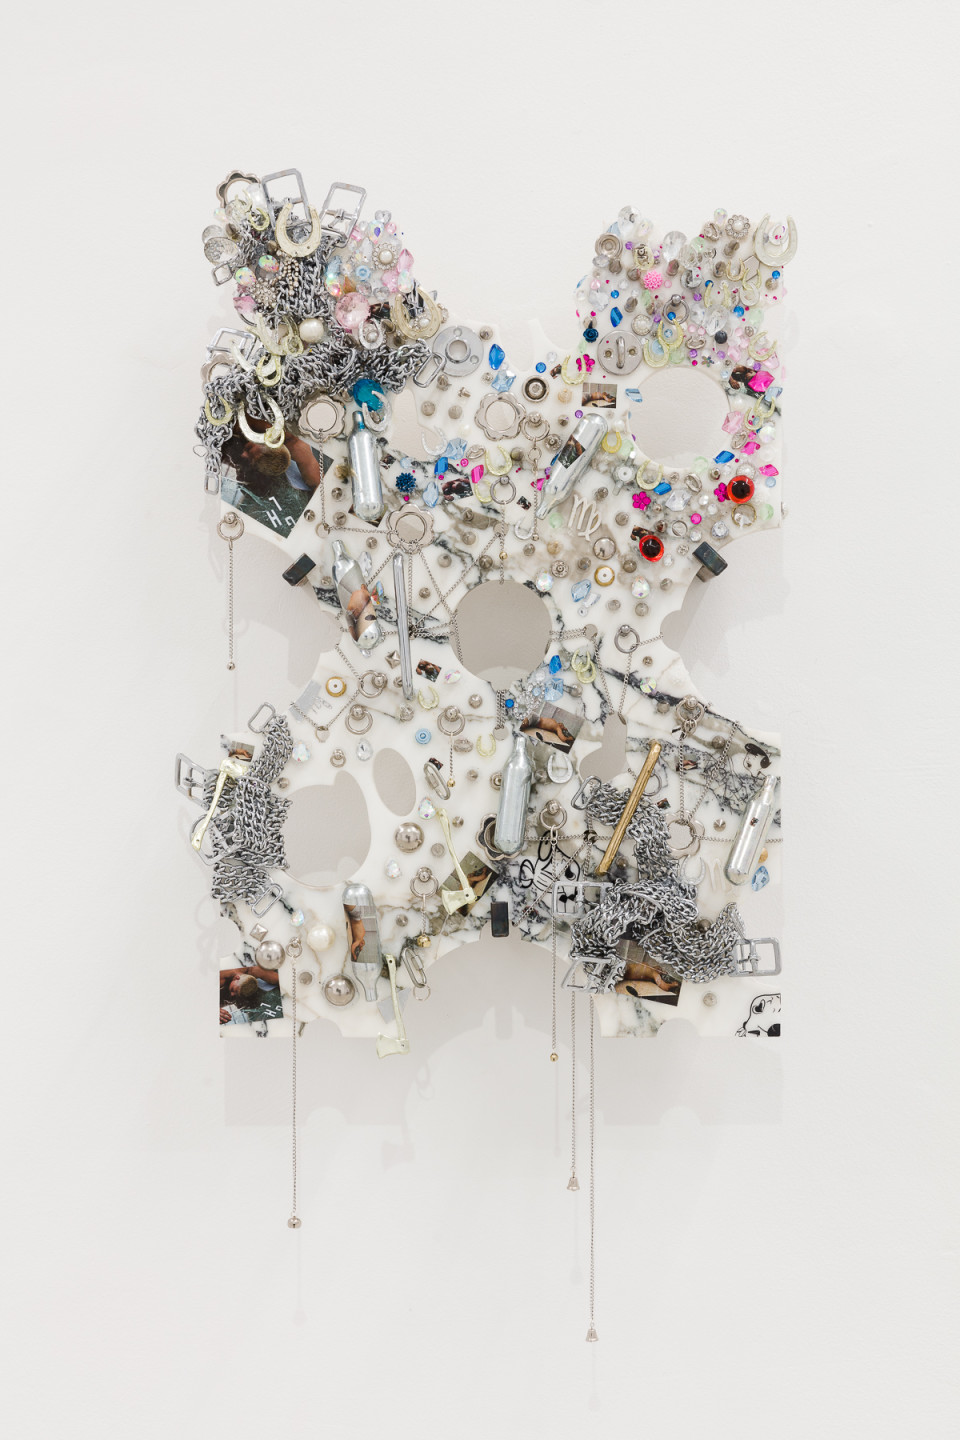 George Henry Longly Promo V, 2019 Marble, metal chains, nitrous oxide, photographs, plastic 82 x 42 x 2 cm 32 1/4 x 16 1/2 x 3/4 in